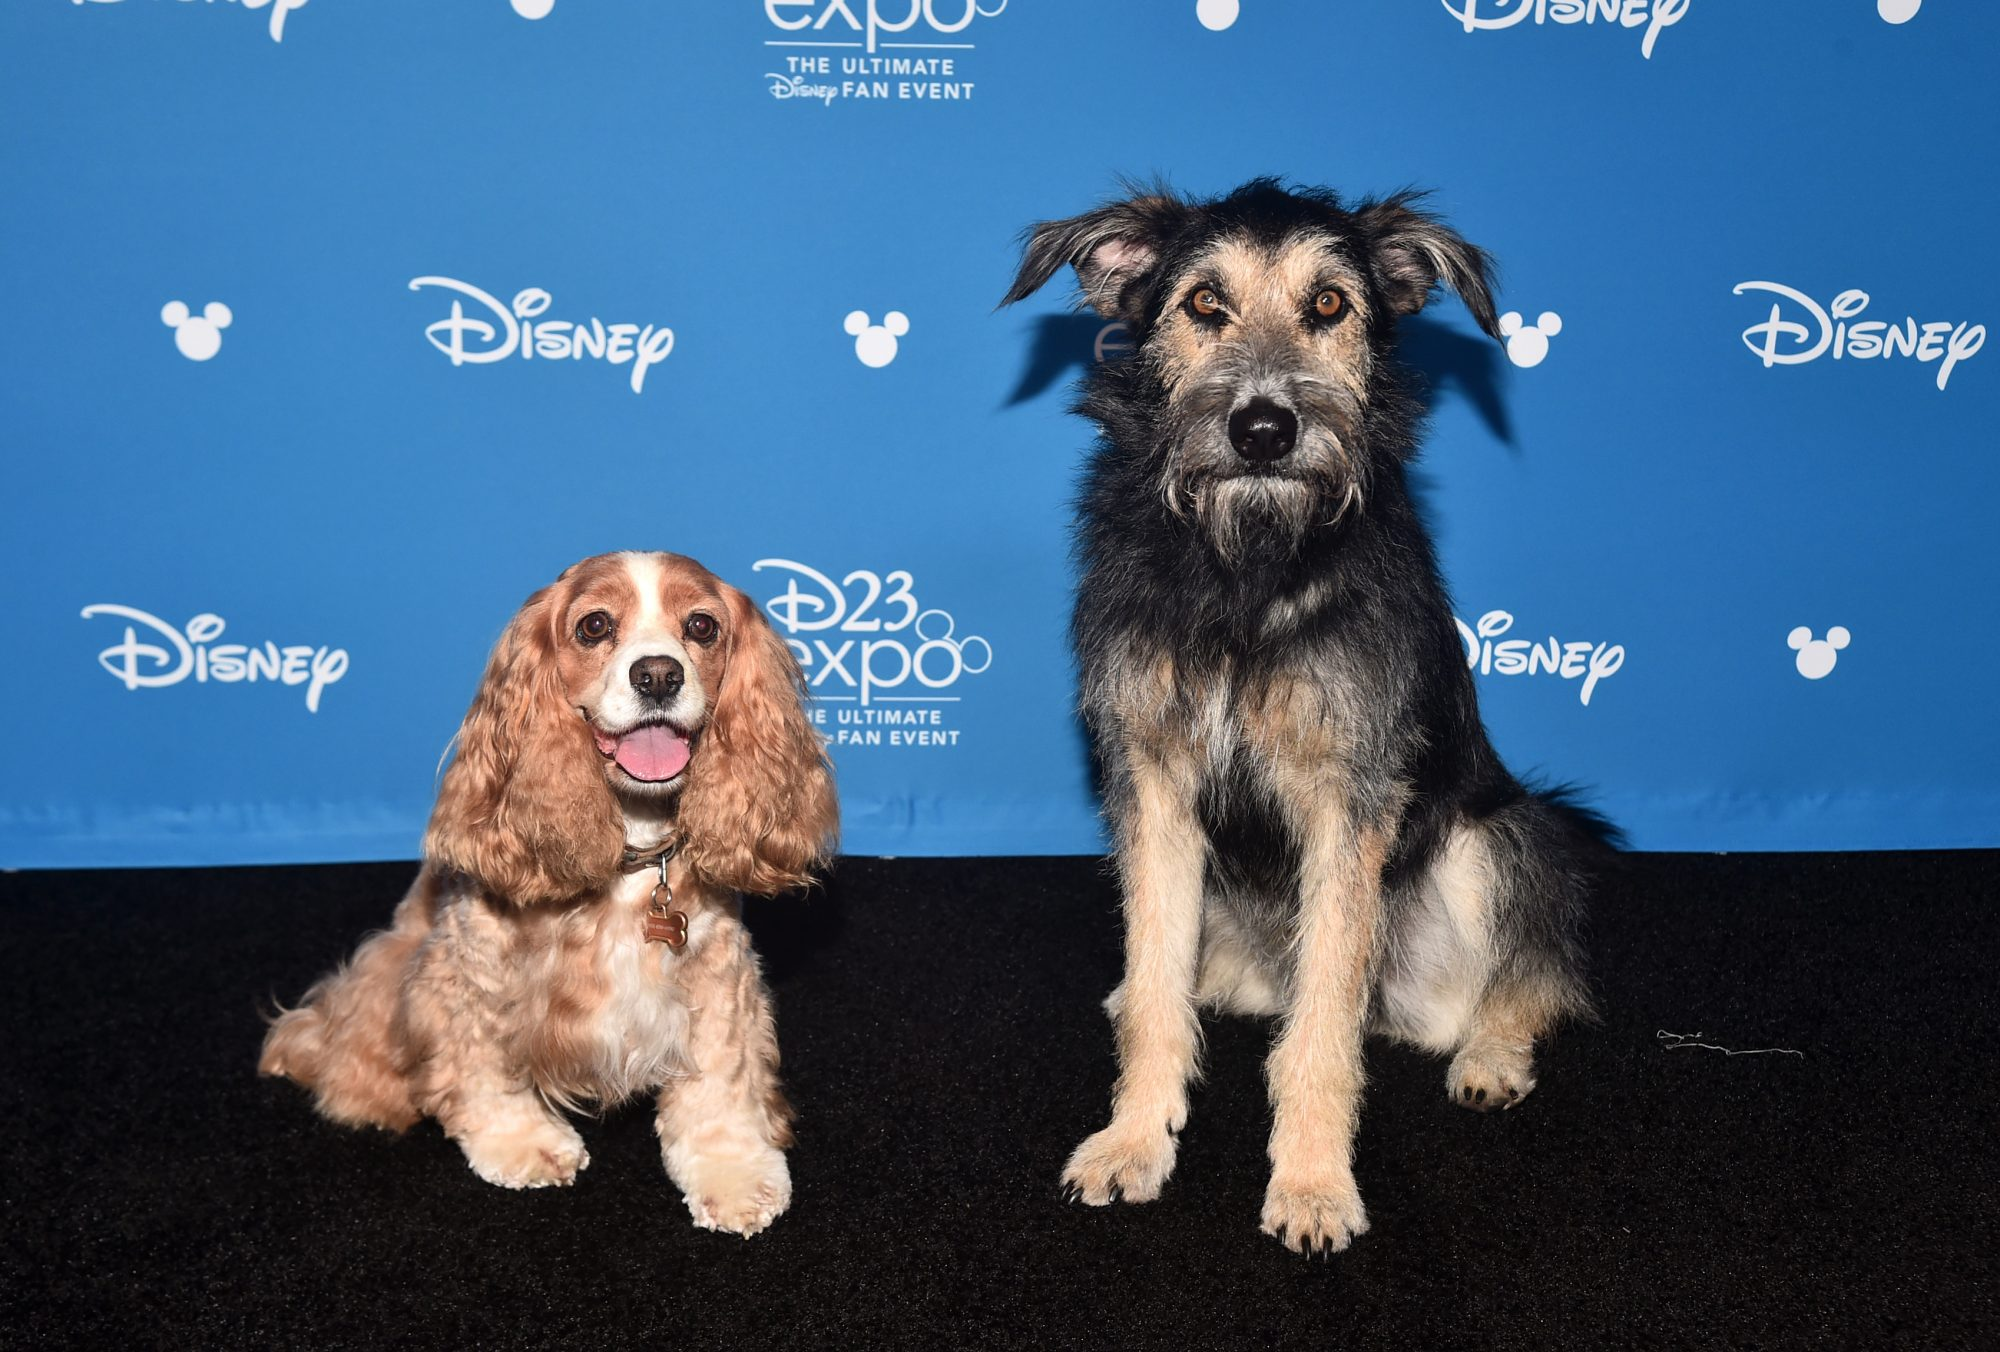 Monte and Rose of Lady and the Tramp